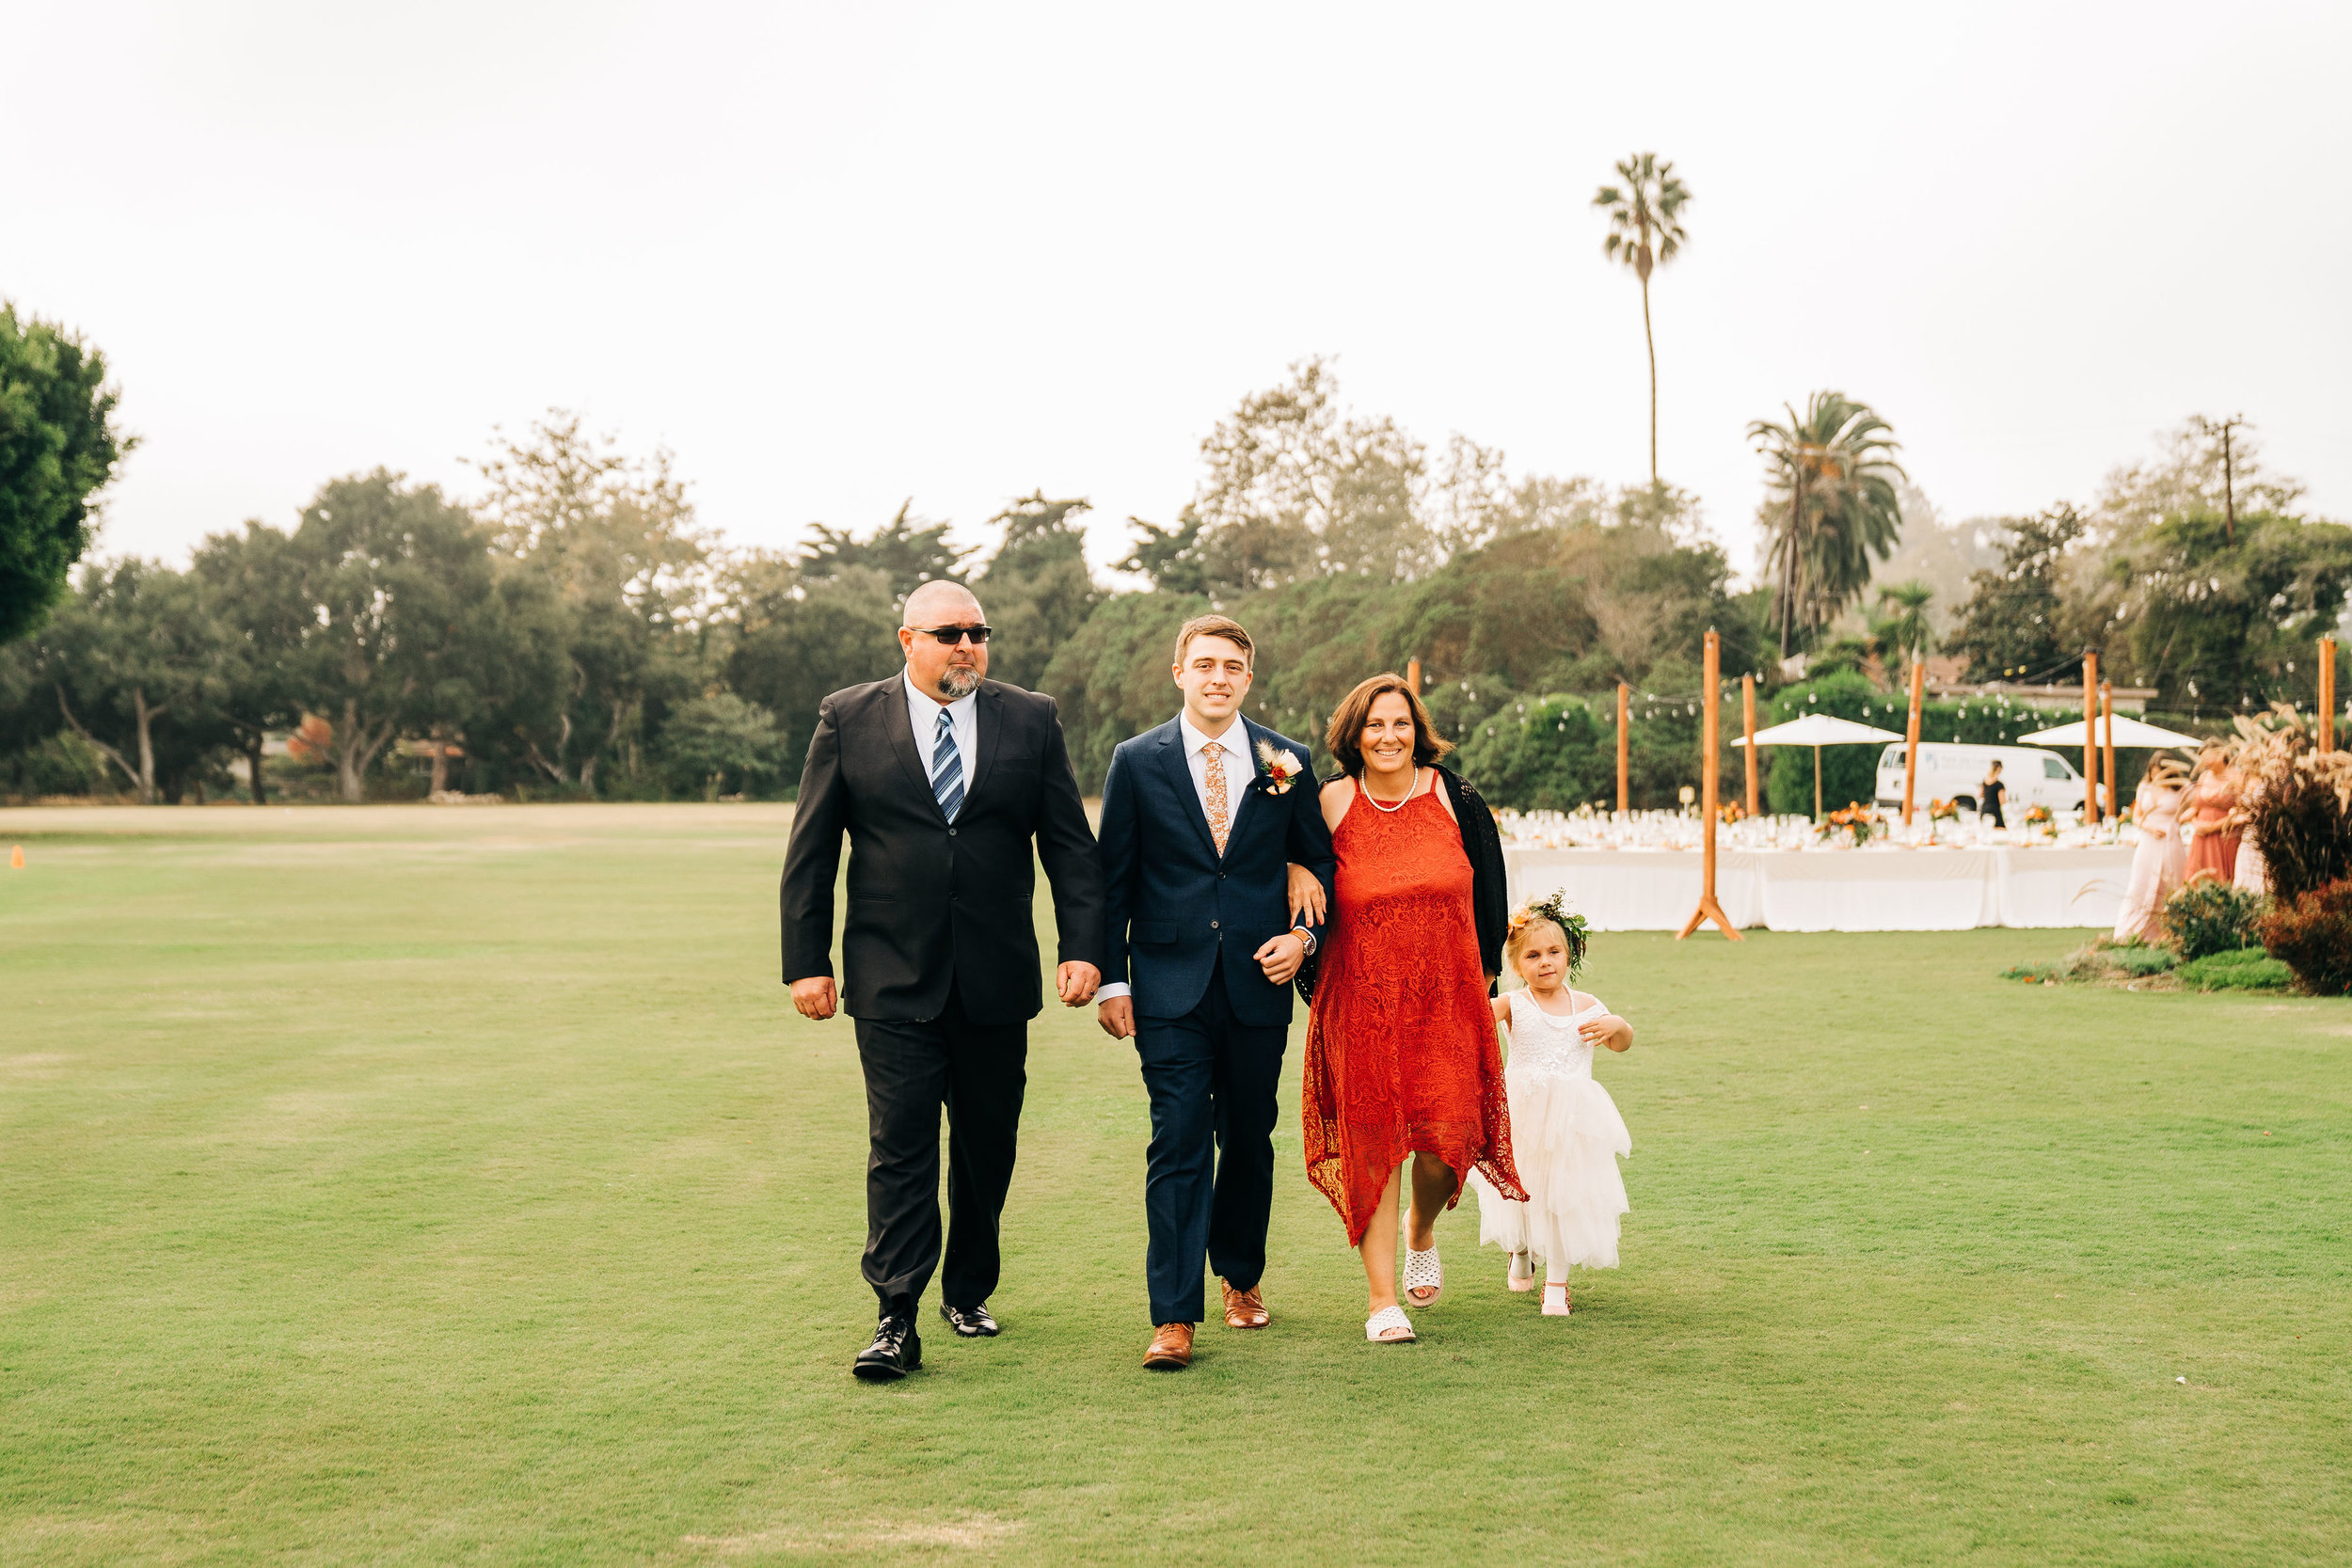 allie-shupe-tyler-wiggins-wedding-santa-barbara 074.jpg